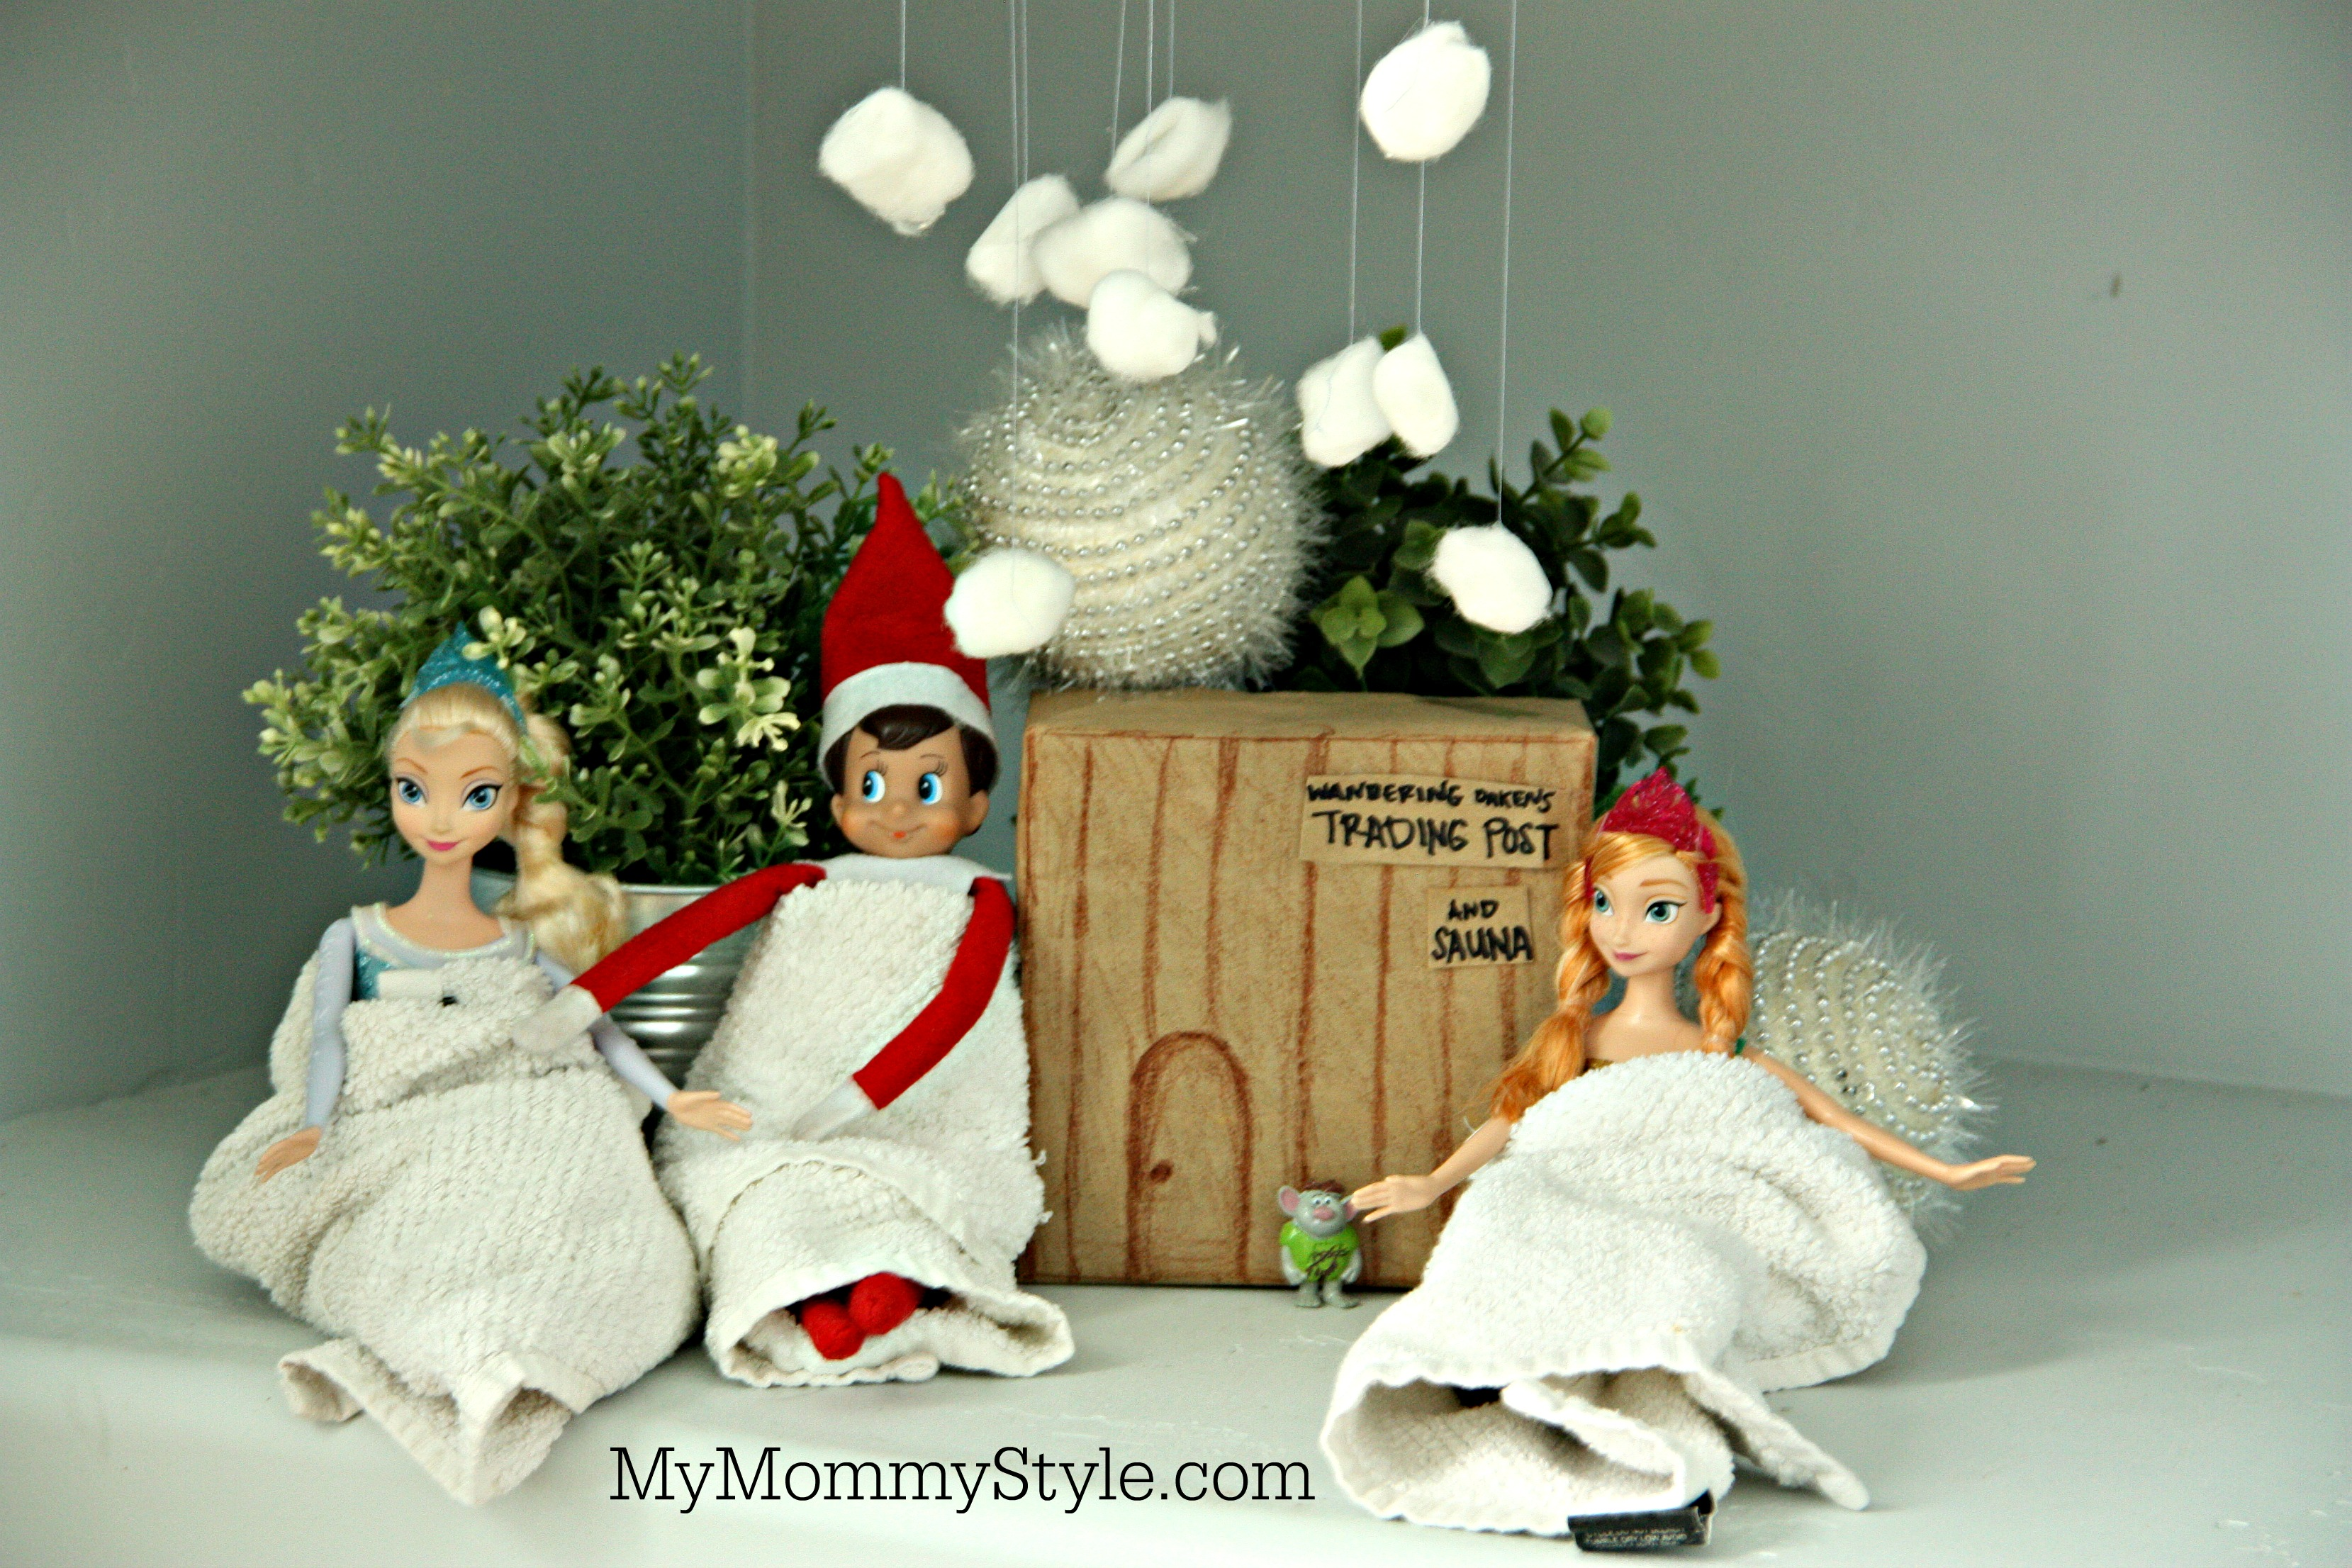 Elf On The Shelf Frozen Visiting The Trading Post